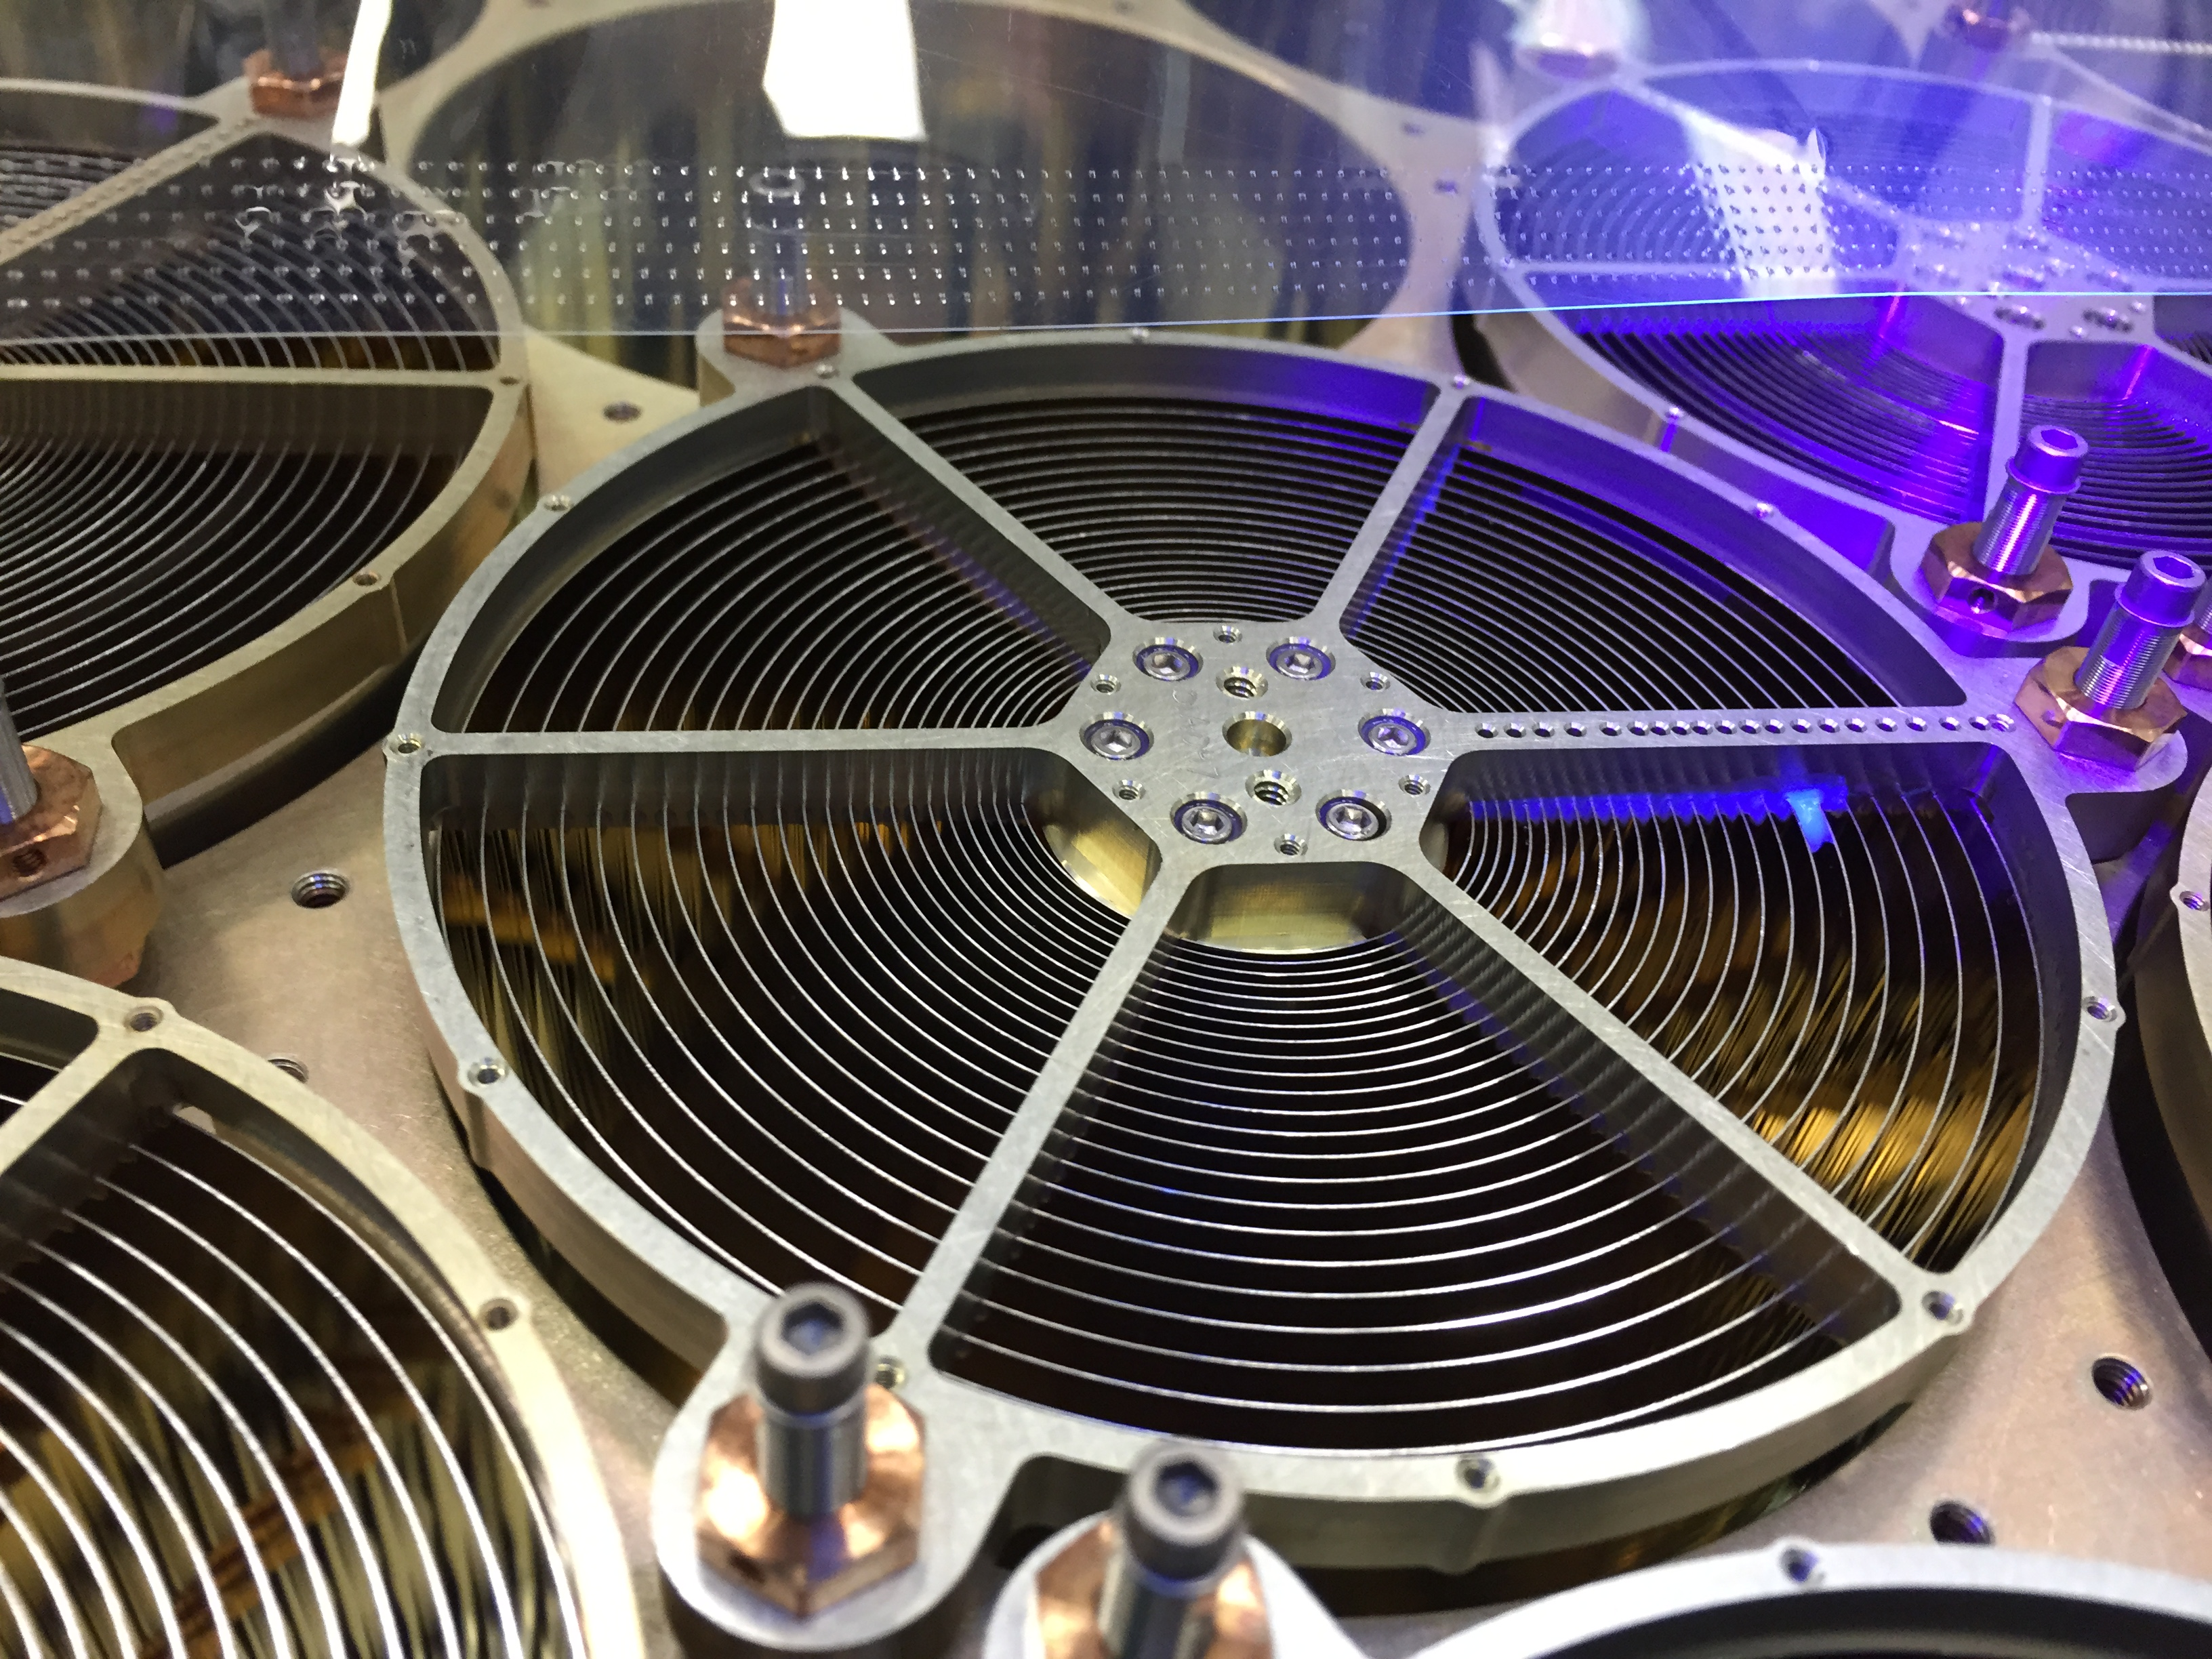 Close-up View of Neutron Star Mission's X-Ray Concentrator Optics